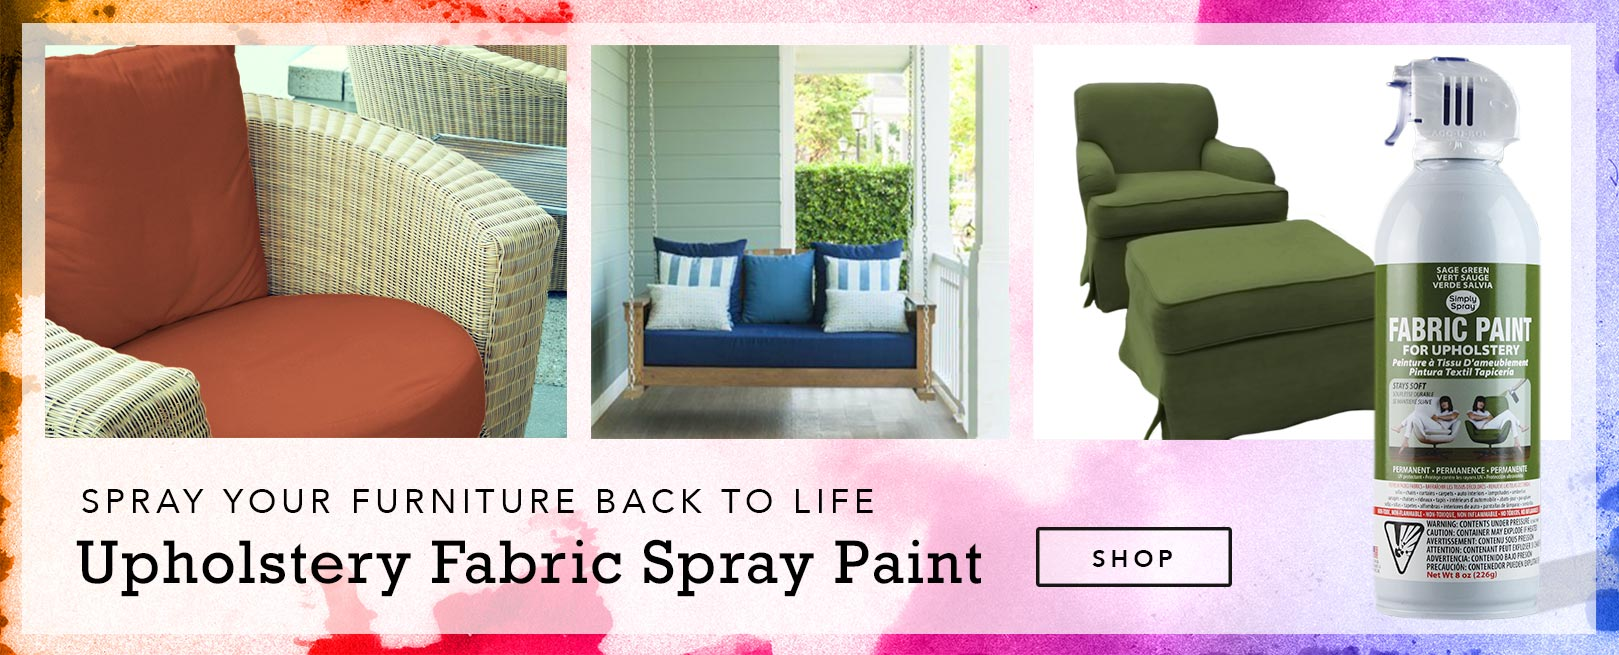 Upholstery Fabric Spray Paint